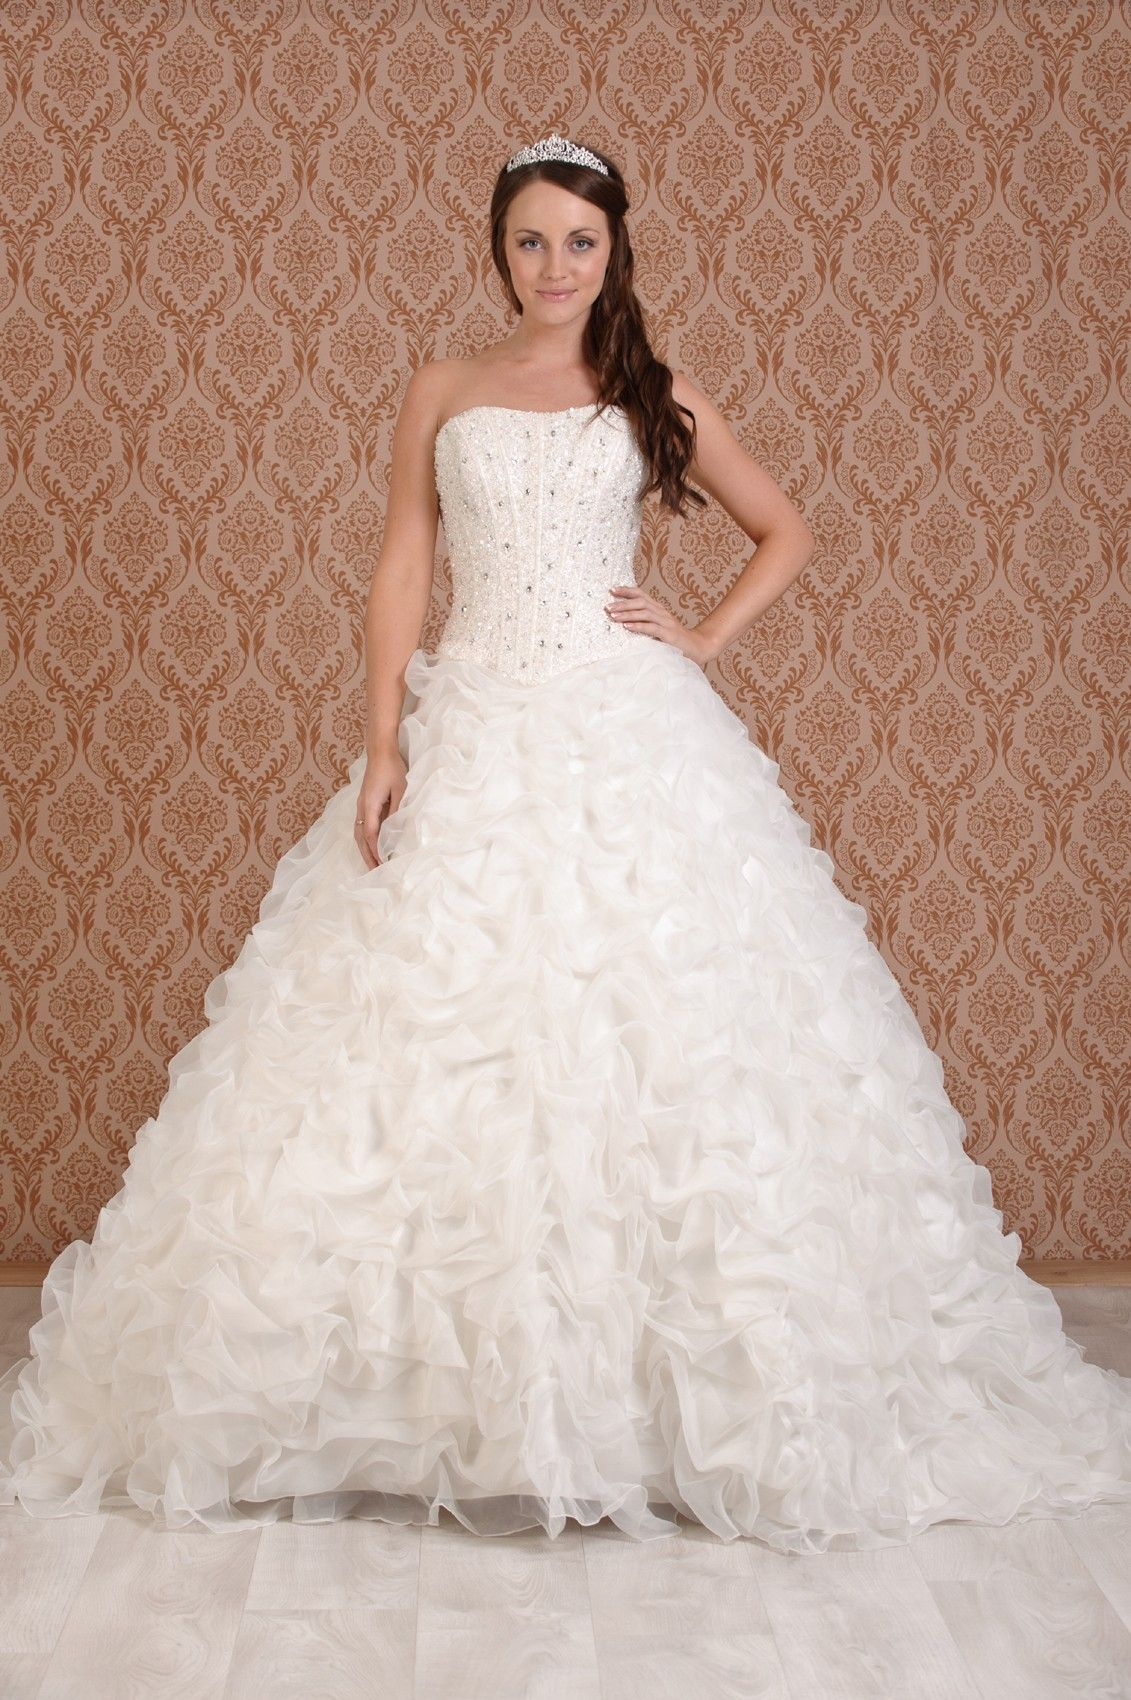 Princess Style Wedding Dresses Characteristics | Wedding Sunny ...